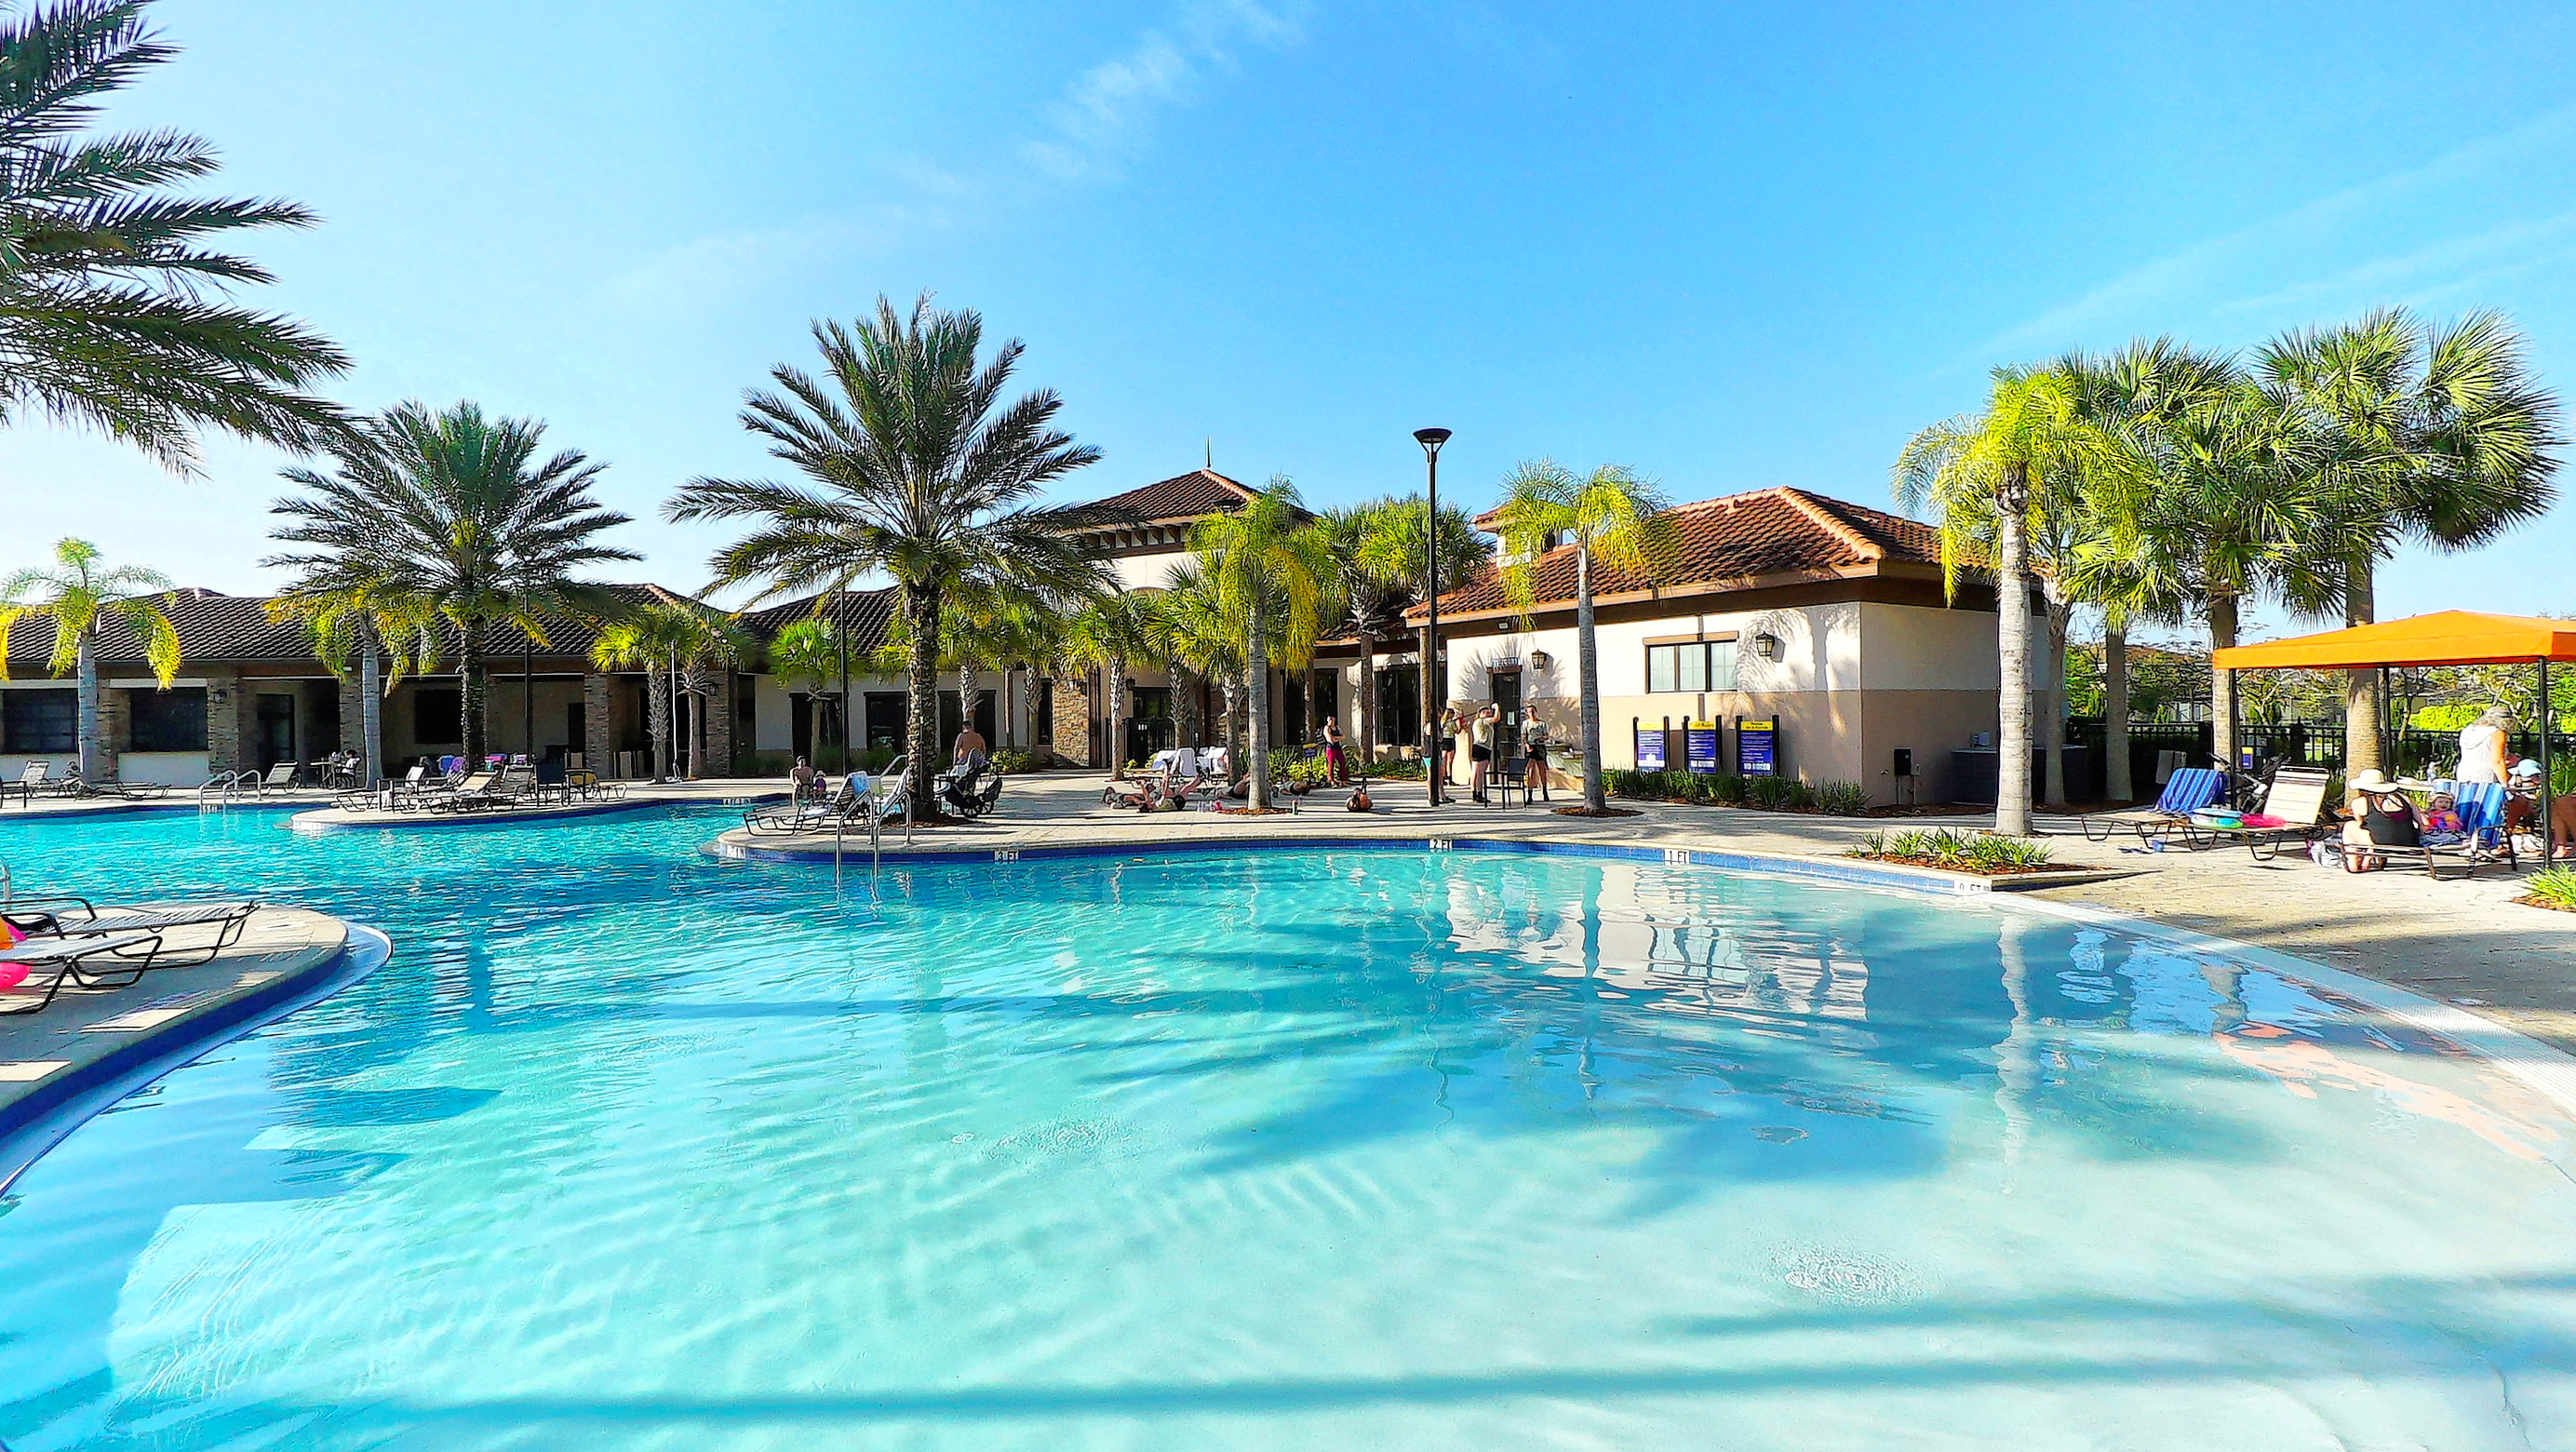 New Homes in Solterra Resort  Davenport Florida  DR